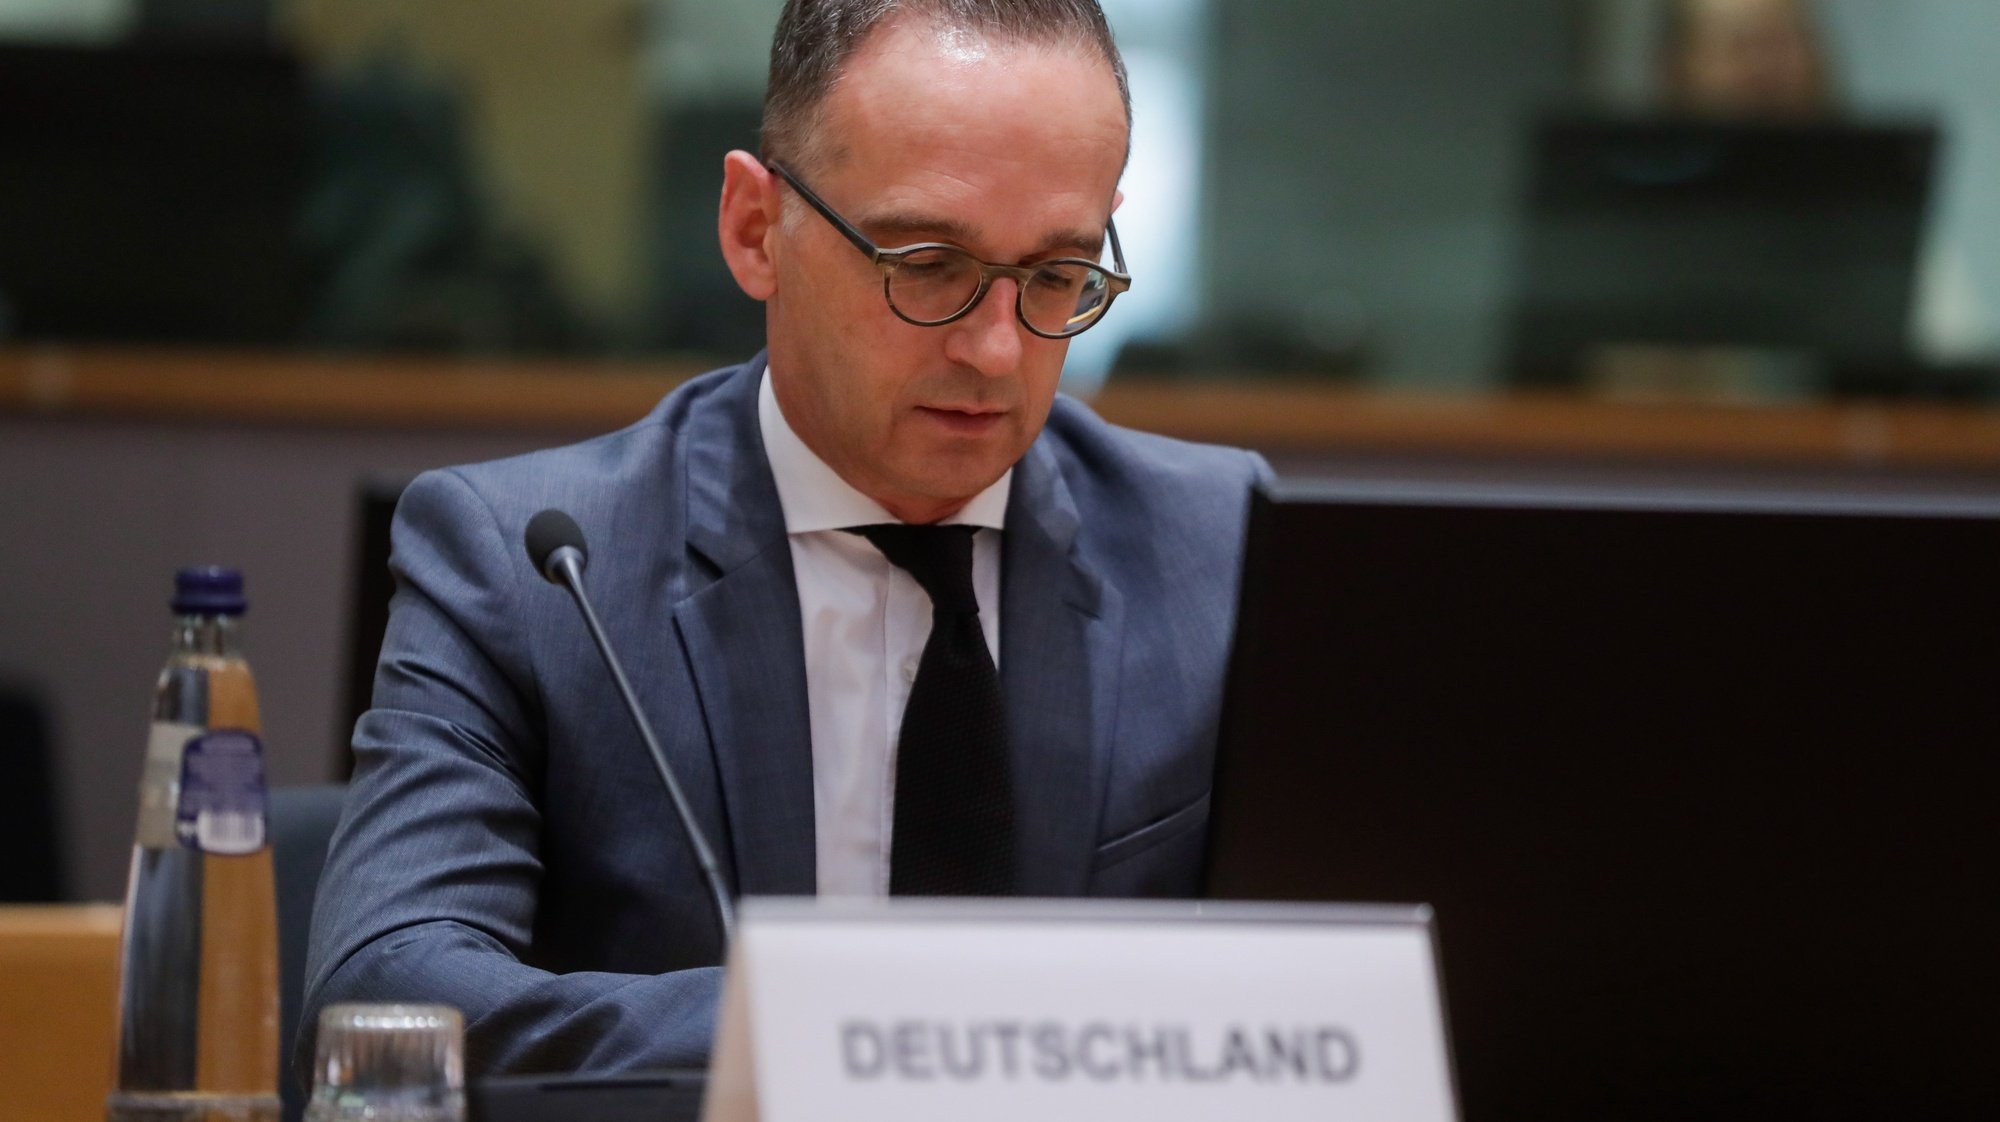 epa09339673 German Foreign Minister Heiko Maas attends a meeting of EU foreign ministers, at the European Council in Brussels, Belgium, 12 July 2021. EU foreign affairs minister will discuss the latest developments concerning Afghanistan, South Caucasus and Lebanon, geopolitics of new digital technologies, Ethiopia and the Strategic Compass and expect to approve conclusions on a Globally Connected Europe and on the EU's priorities at the 76th General Assembly of the United Nations.  EPA/STEPHANIE LECOCQ